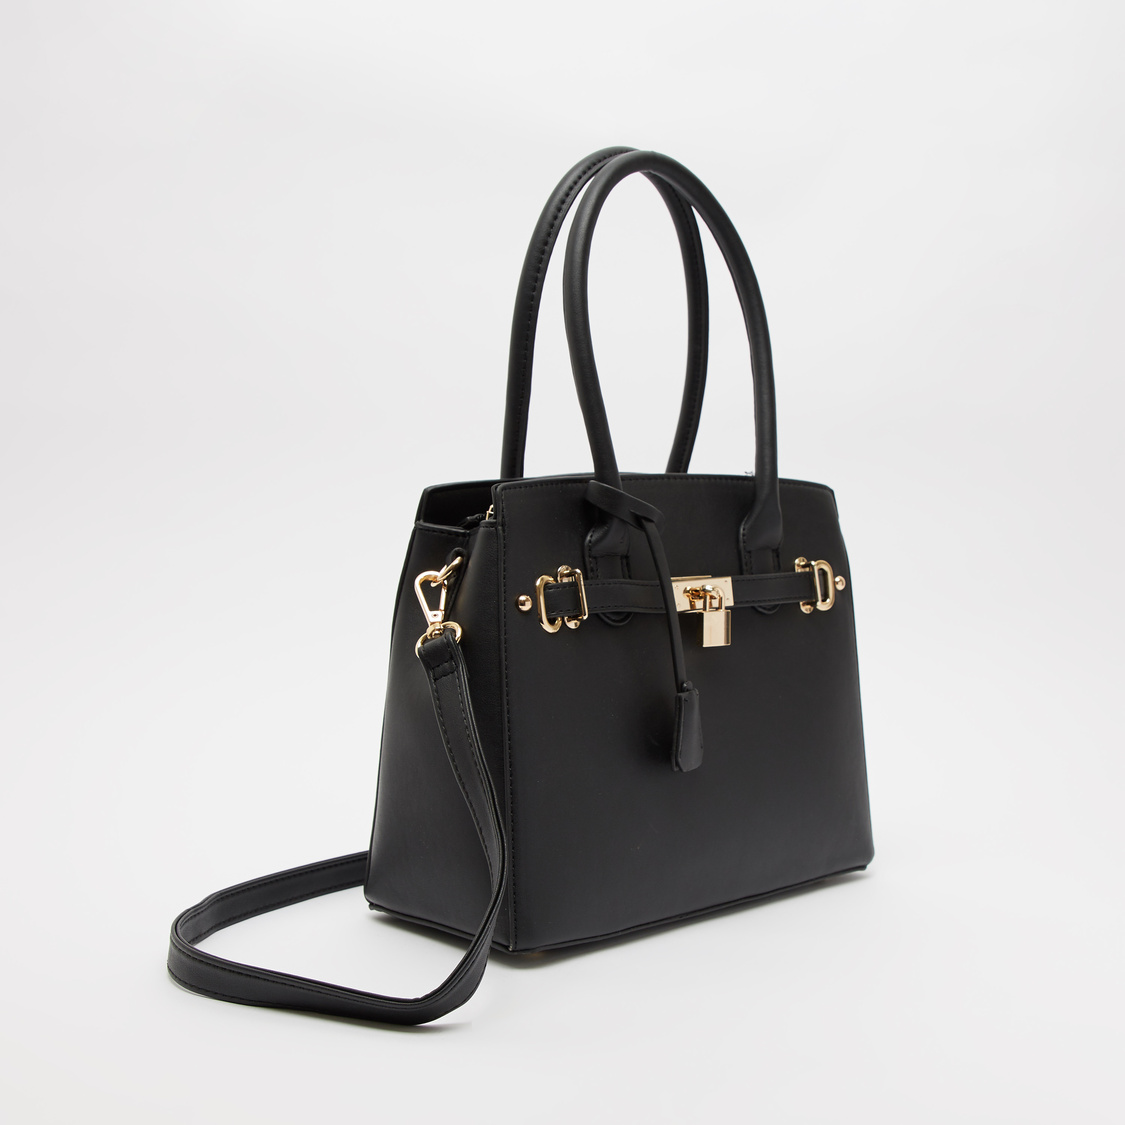 Solid Handbag with Lock and Tags